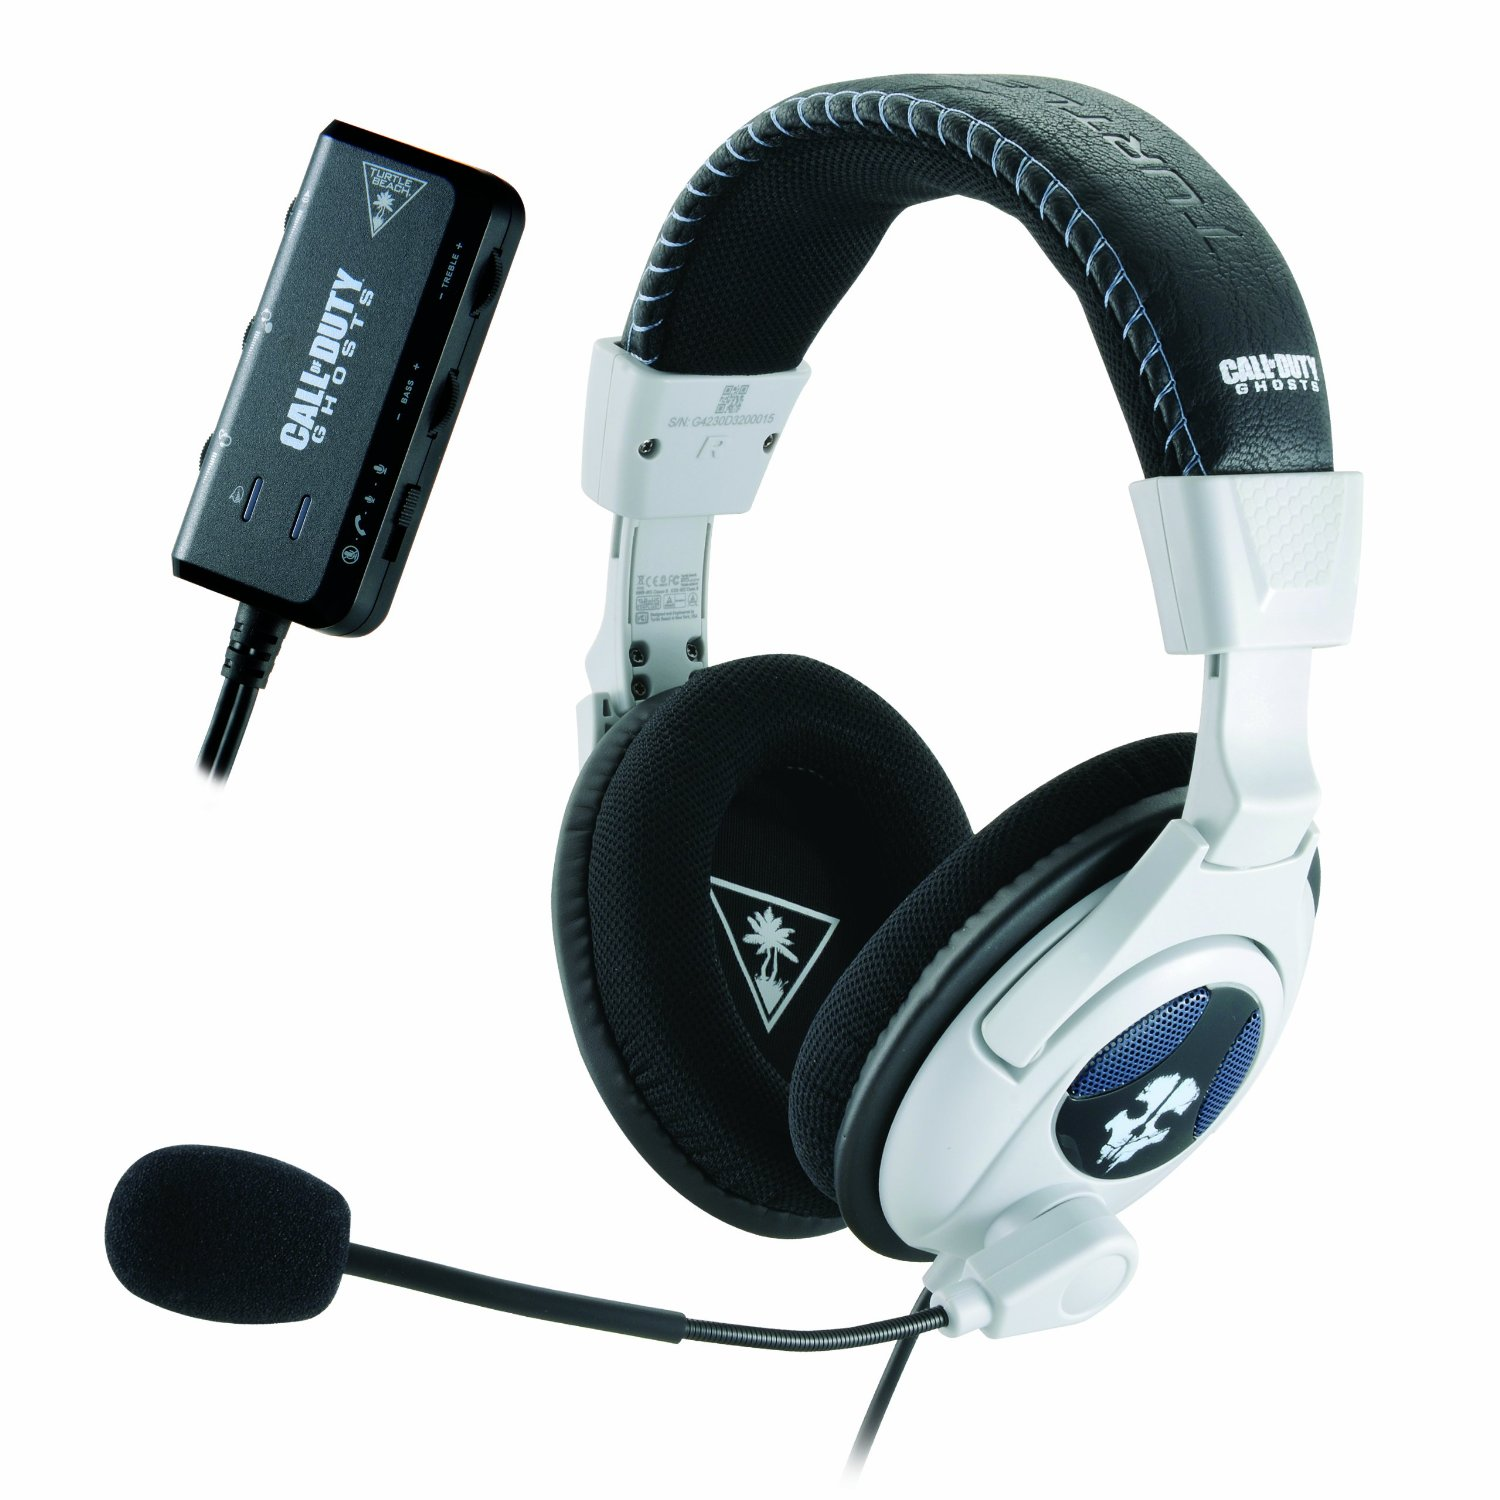 Call Of Duty Ghosts Headset Collection Review Ear Force Spectre Sony Playstation 4 Ps4 Cod Limited Edition Non Dvd Shadow 1